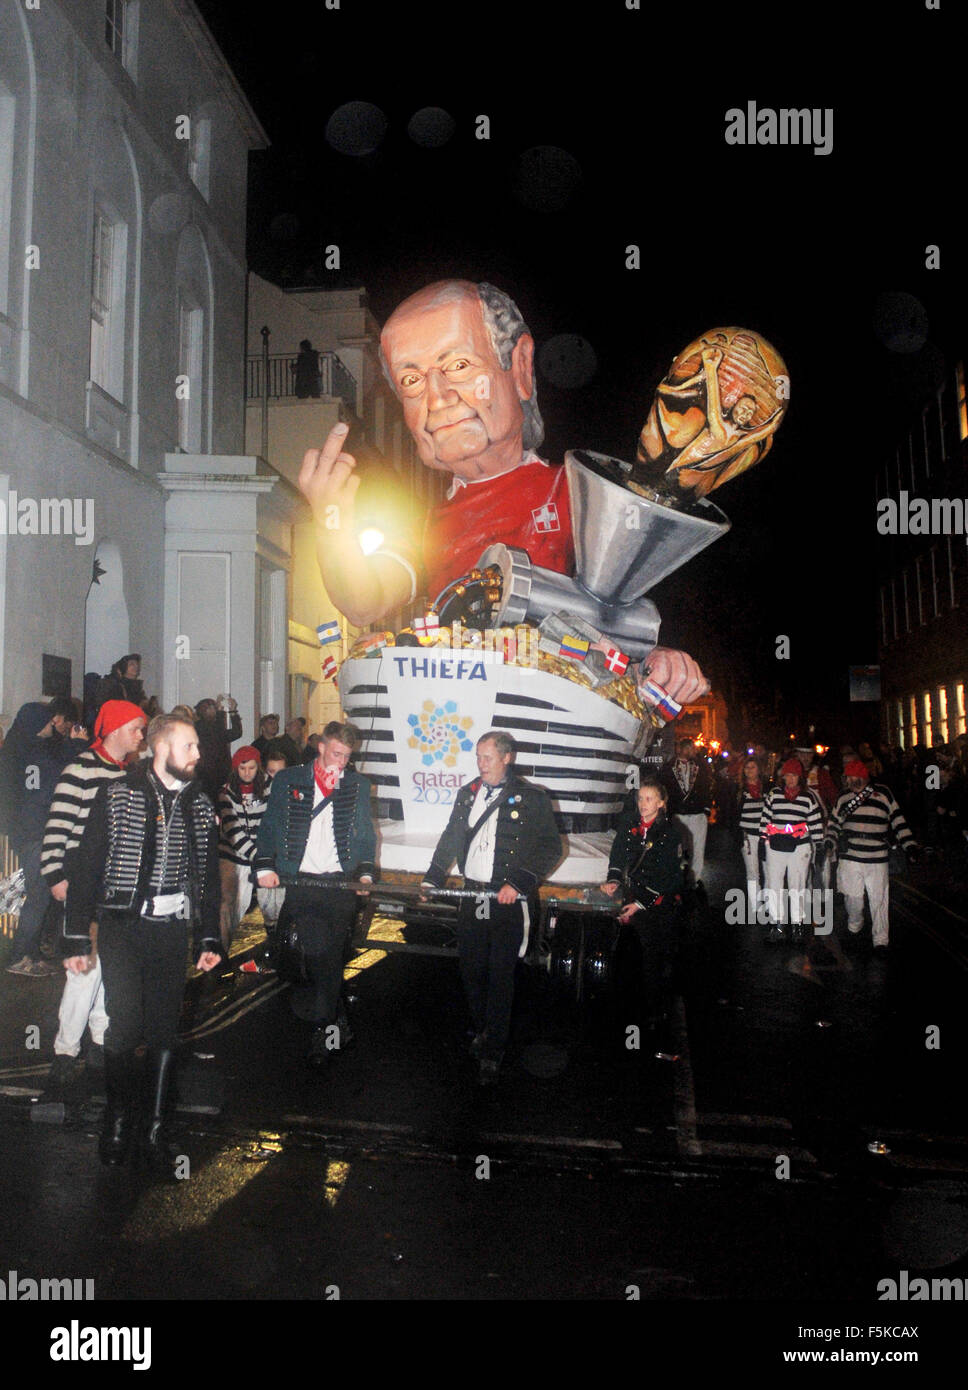 Lewes East Sussex UK 5th November 2015 - The Cliffe Bonfire Society enemy of the bonfire tableau depicting Sepp - Stock Image